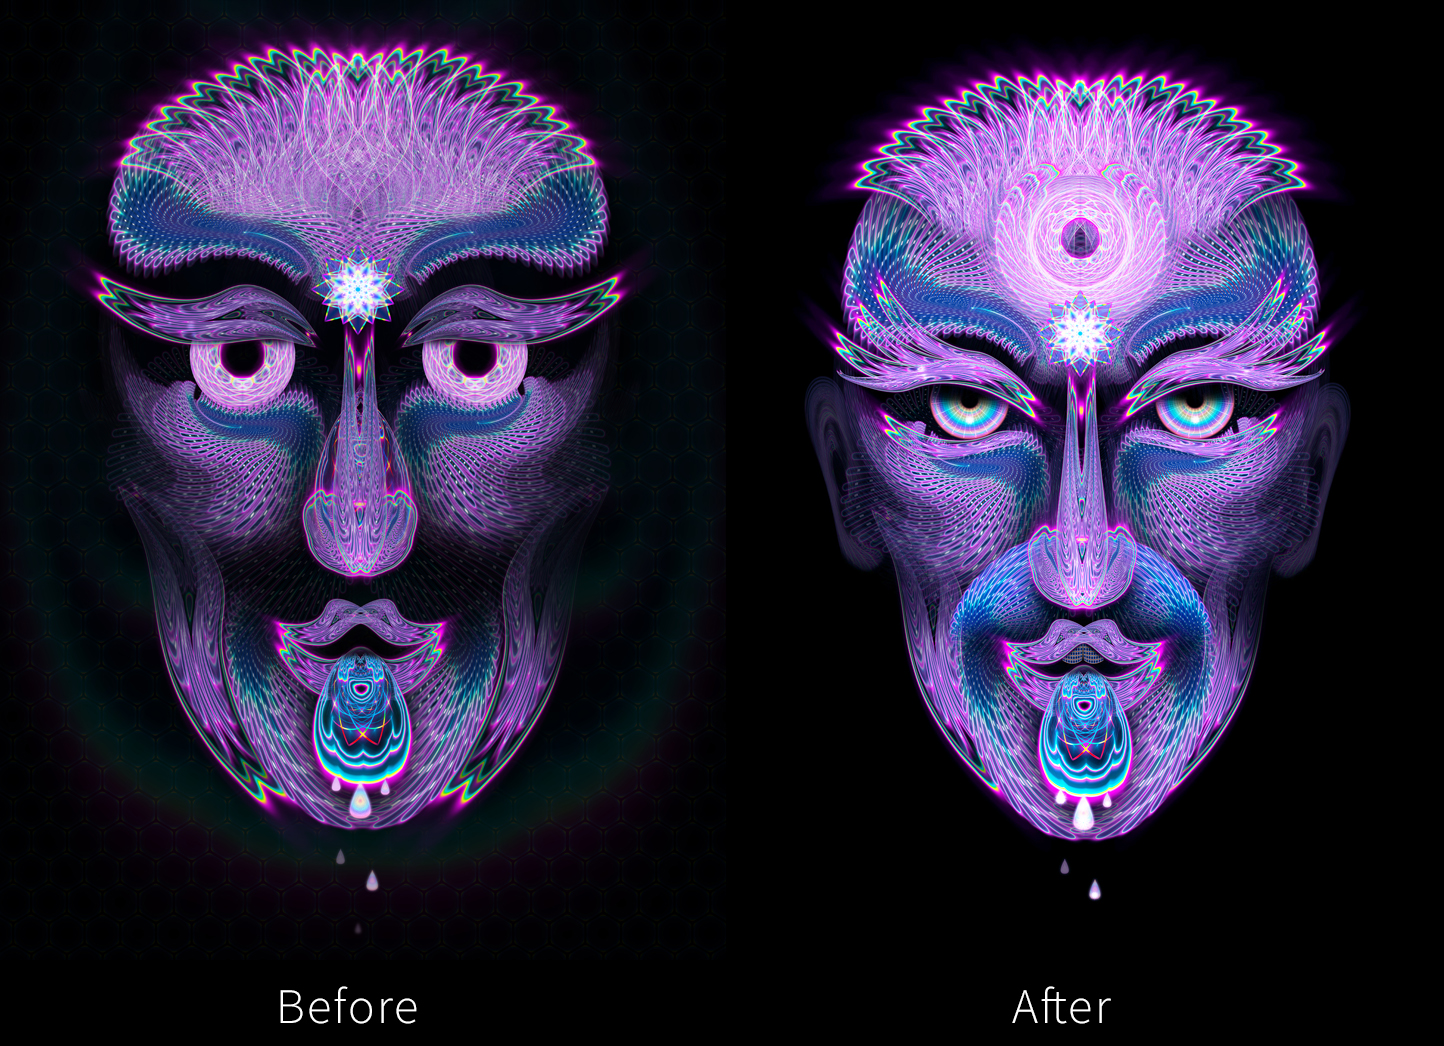 pushing your work before and after image